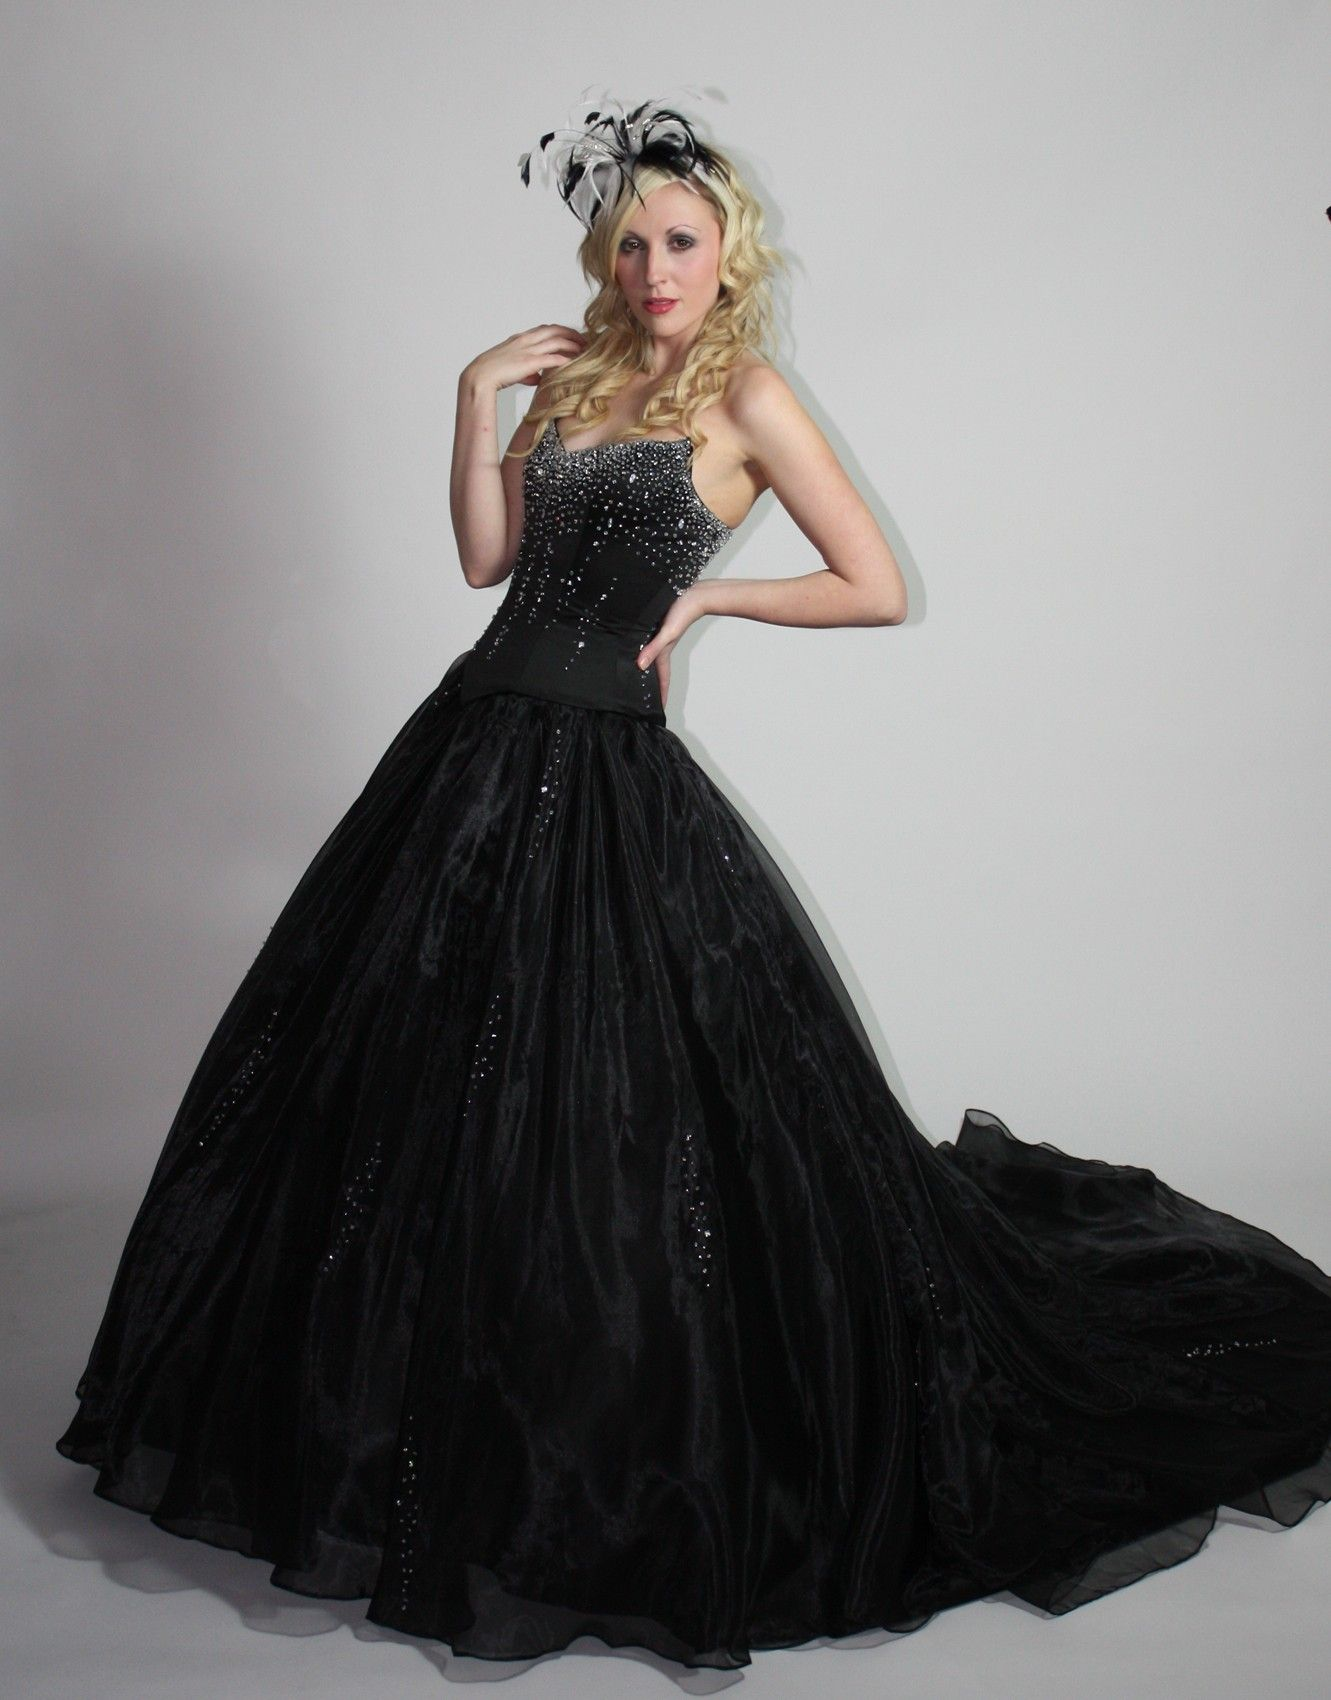 Parisblack wedding dresses black bridesmaid dresses awesome black gothic wedding dresses fantastic dresses ideas in gothic wedding dresses ombrellifo Image collections